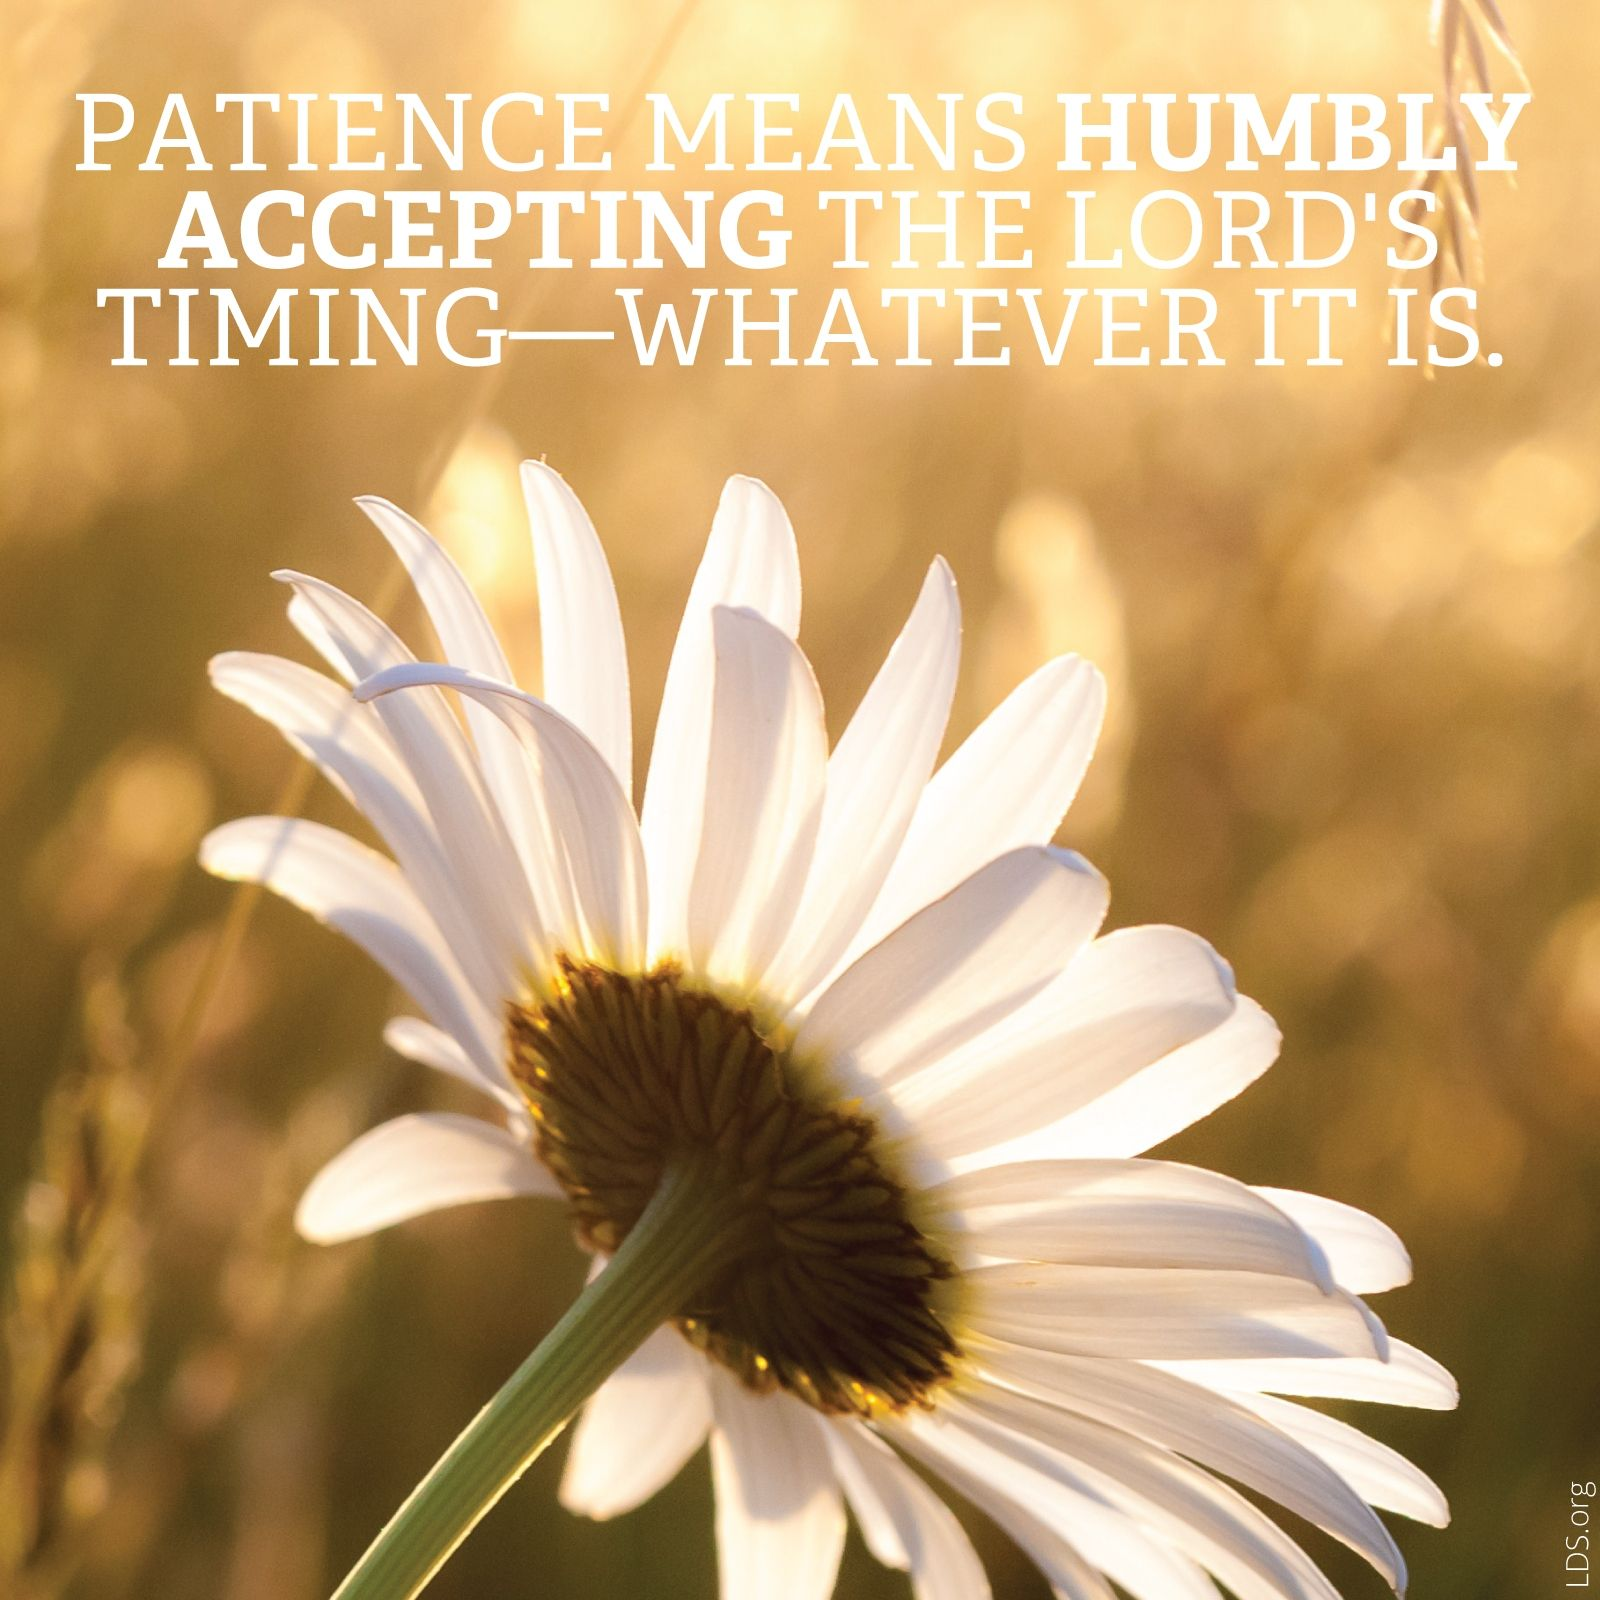 """""""Patience means humbly accepting the Lord's timing—whatever it is.""""—Sarah Jenkins, """"Trust, Patience, and Endurance: My Lessons from Infertility"""""""